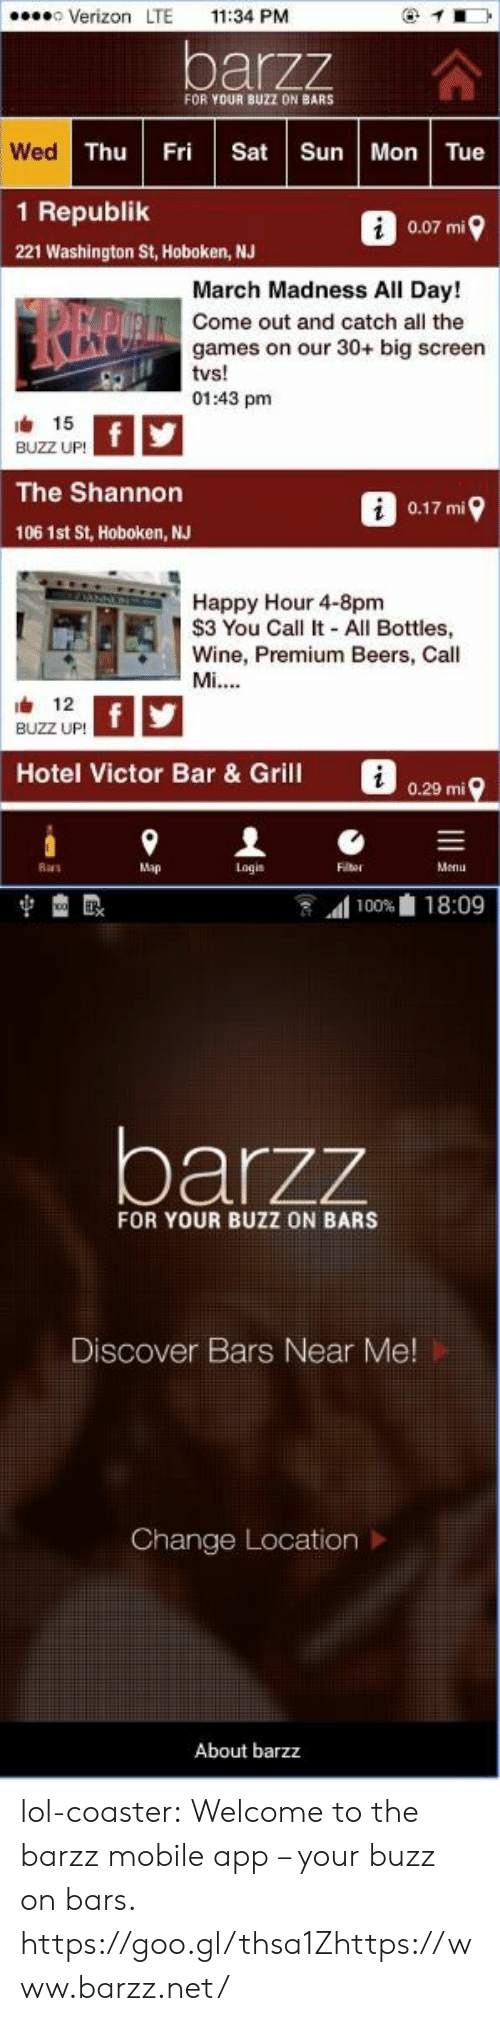 March Madness: Verizon LTE 11:34 PM  barzz  FOR YOUR BUZZ DN BARS  Wed  Thu Fri Sat Sun Mon Tue  1 Republik  0.07 mi  221 Washington St, Hoboken, NJ  March Madness All Day!  Come out and catch all the  games on our 30+ big screen  01:43 pm  由 15  BUZZ UP!  The Shannon  0.17 mi  106 1st St, Hoboken, NJ  2 Happy Hour 4-8pm  S3 You Call It - All Bottles,  Wine, Premium Beers, Call  12  BUZZ UP!  Hotel Victor Bar & Grill  i  0.29 mi  Ras  Map  Logis  Flter  Menu   1100%血18:09  barzz  FOR YOUR BUZZ ON BARS  Discover Bars Near Me  Change Location >  About barzz lol-coaster:    Welcome to the barzz mobile app – your buzz on bars.    https://goo.gl/thsa1Zhttps://www.barzz.net/